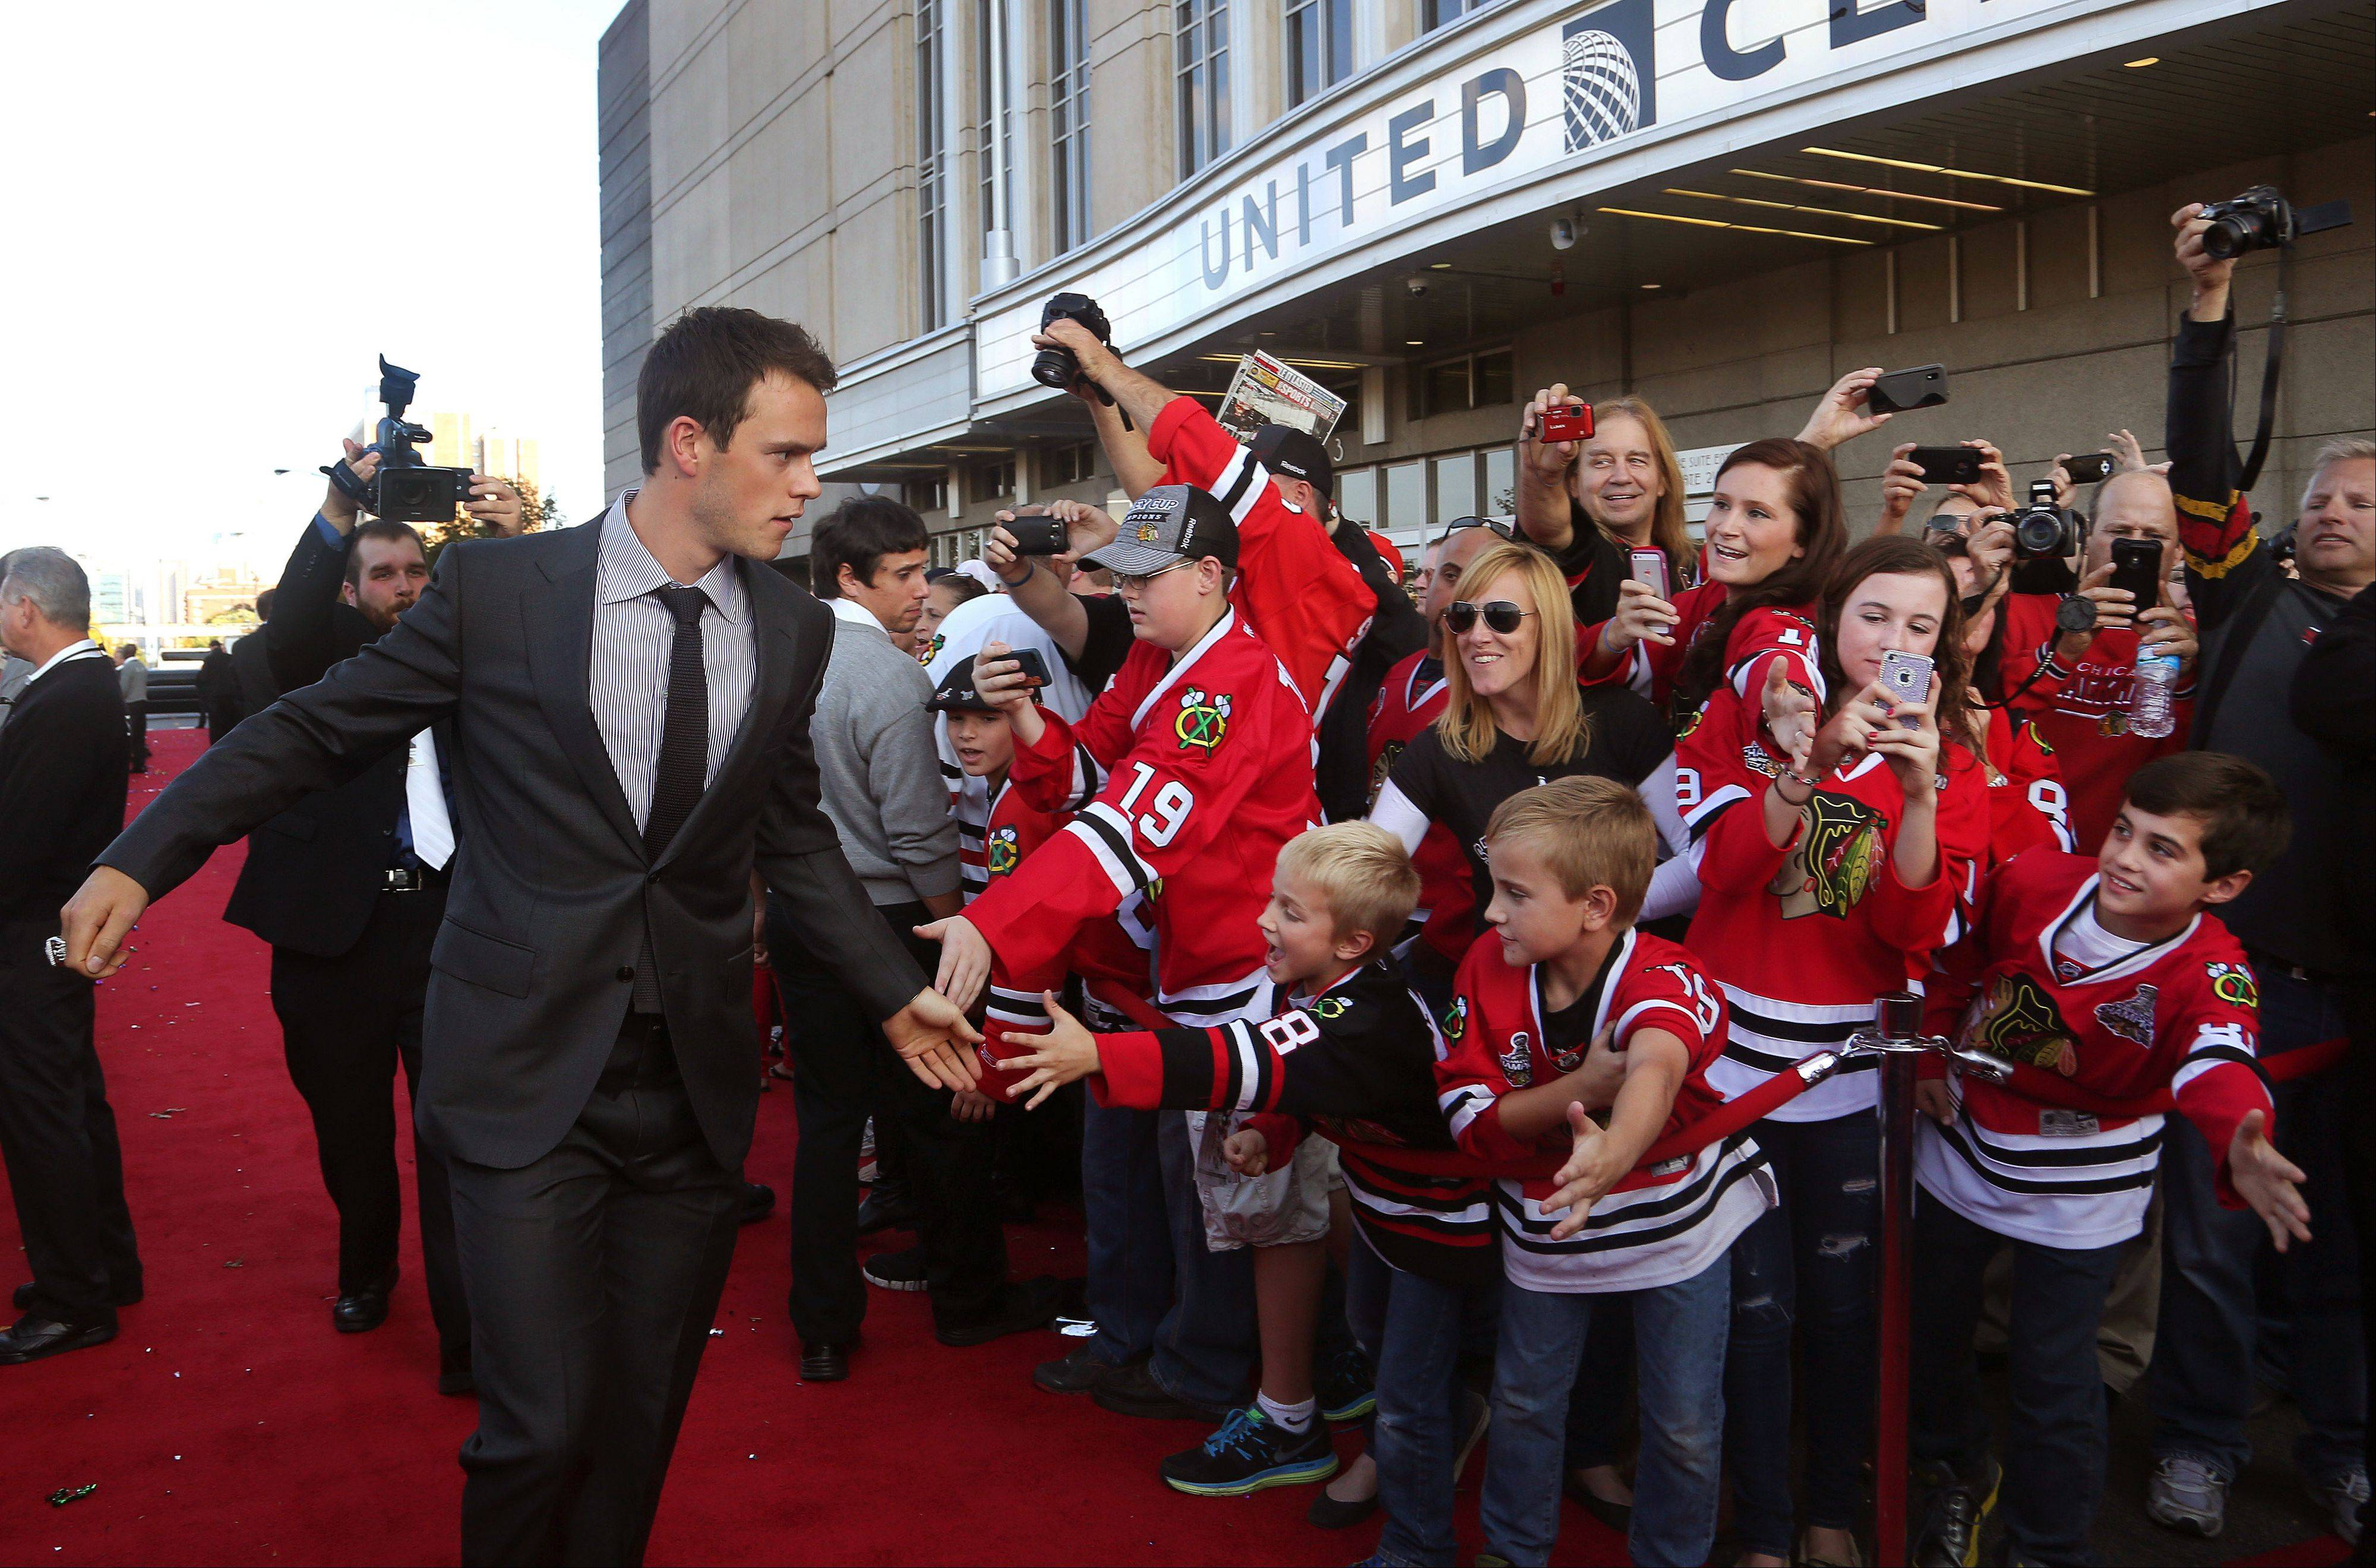 Chicago Blackhawks center Jonathan Toews high-fives fans.